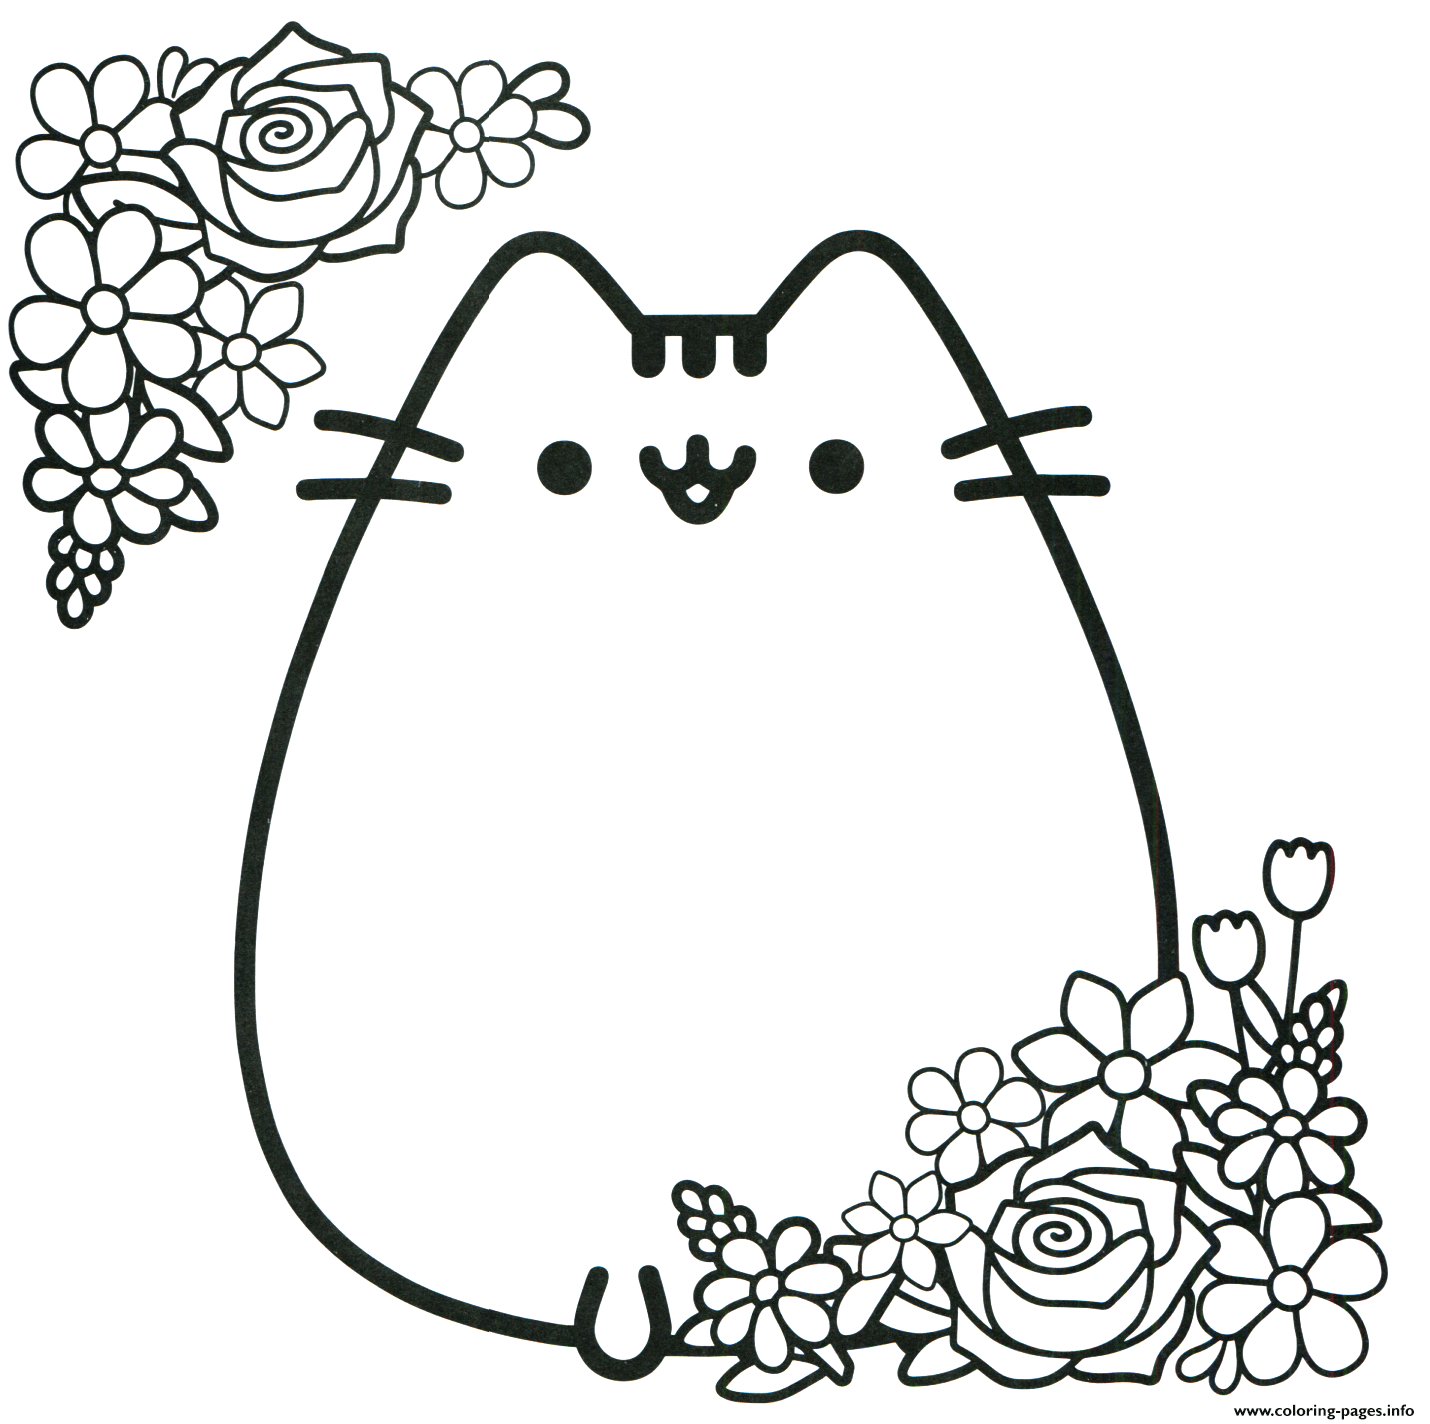 Coloring Pages Pusheen | Free download best Coloring Pages Pusheen ...